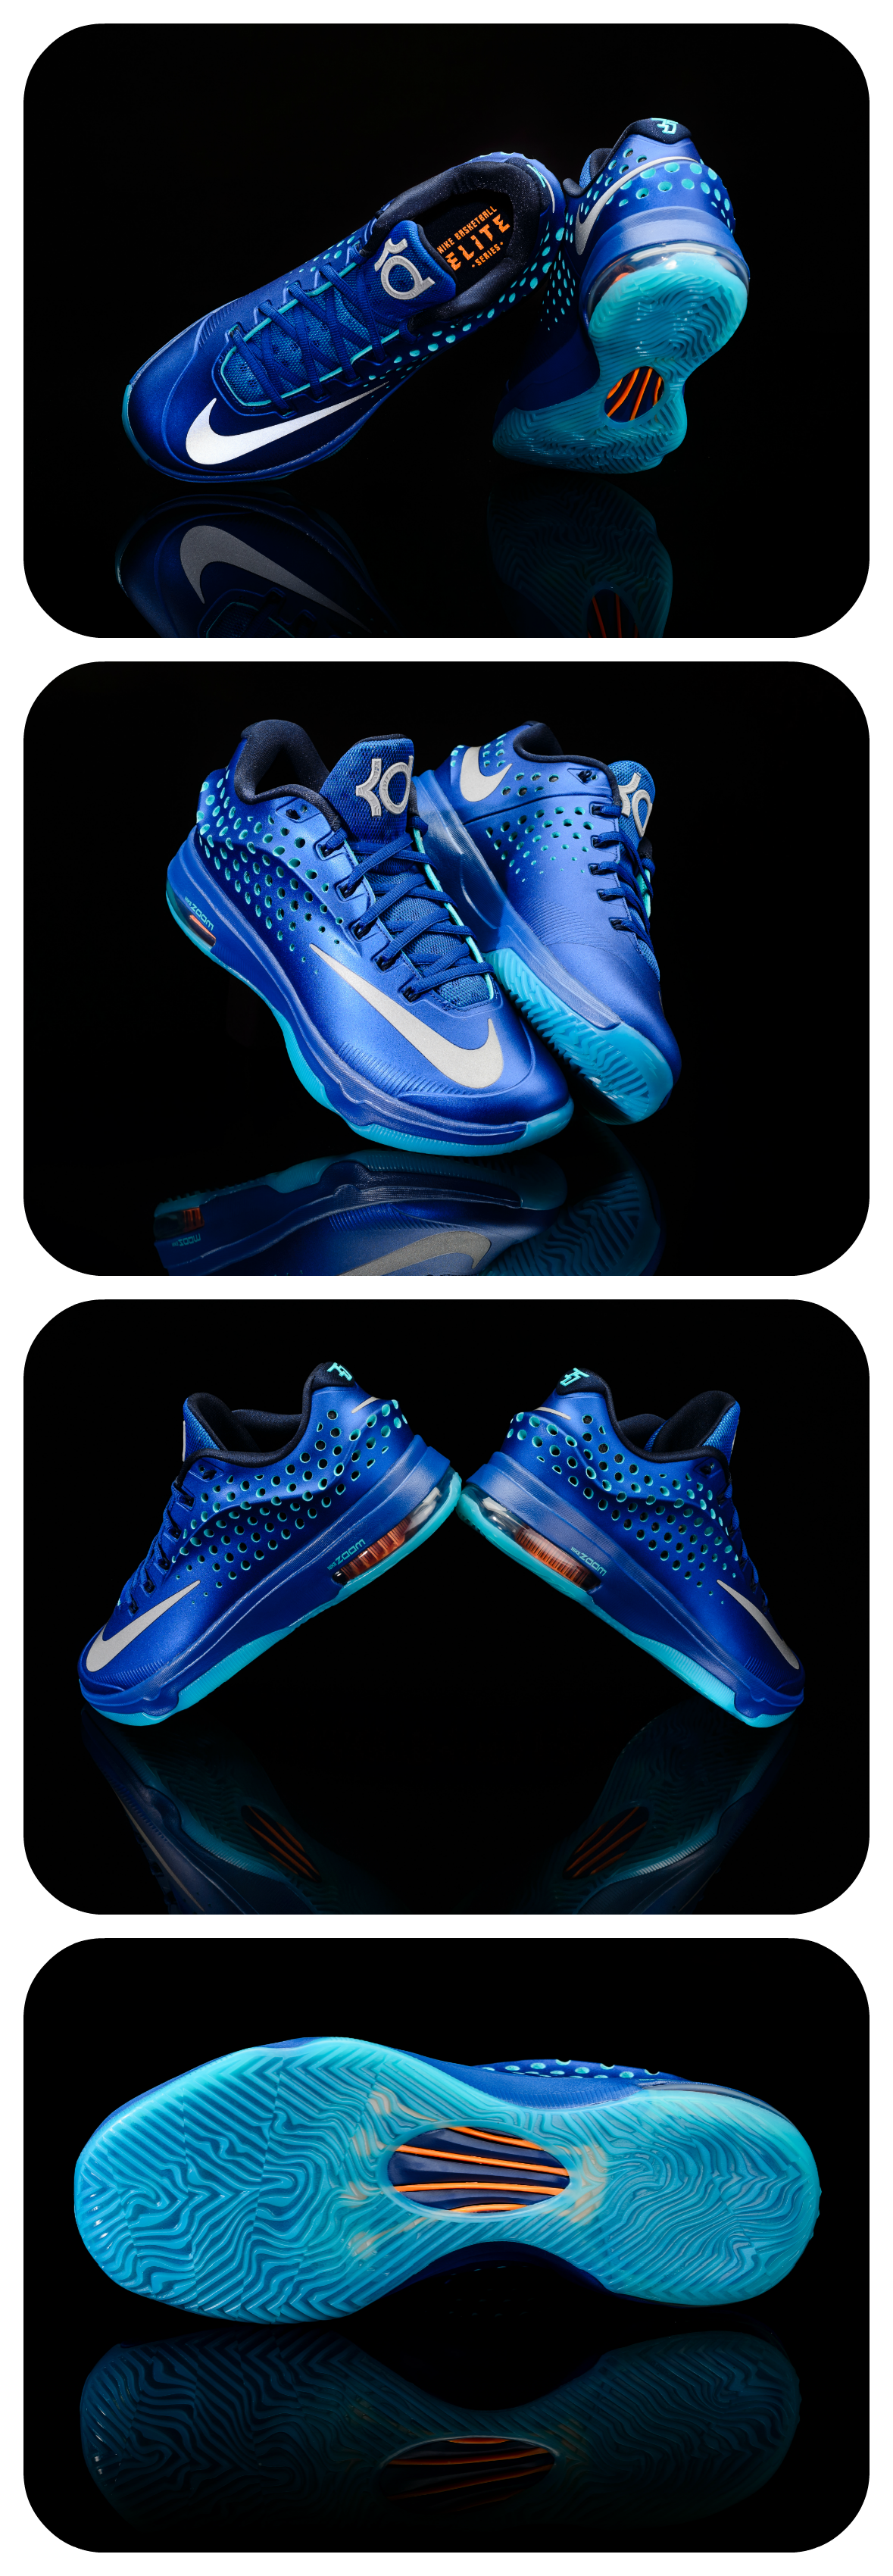 Tomorrow you can reach for the sky and elevate your game with the latest Nike KD 7 Elite colorway. #Basketball #Shoes #KevinDurant